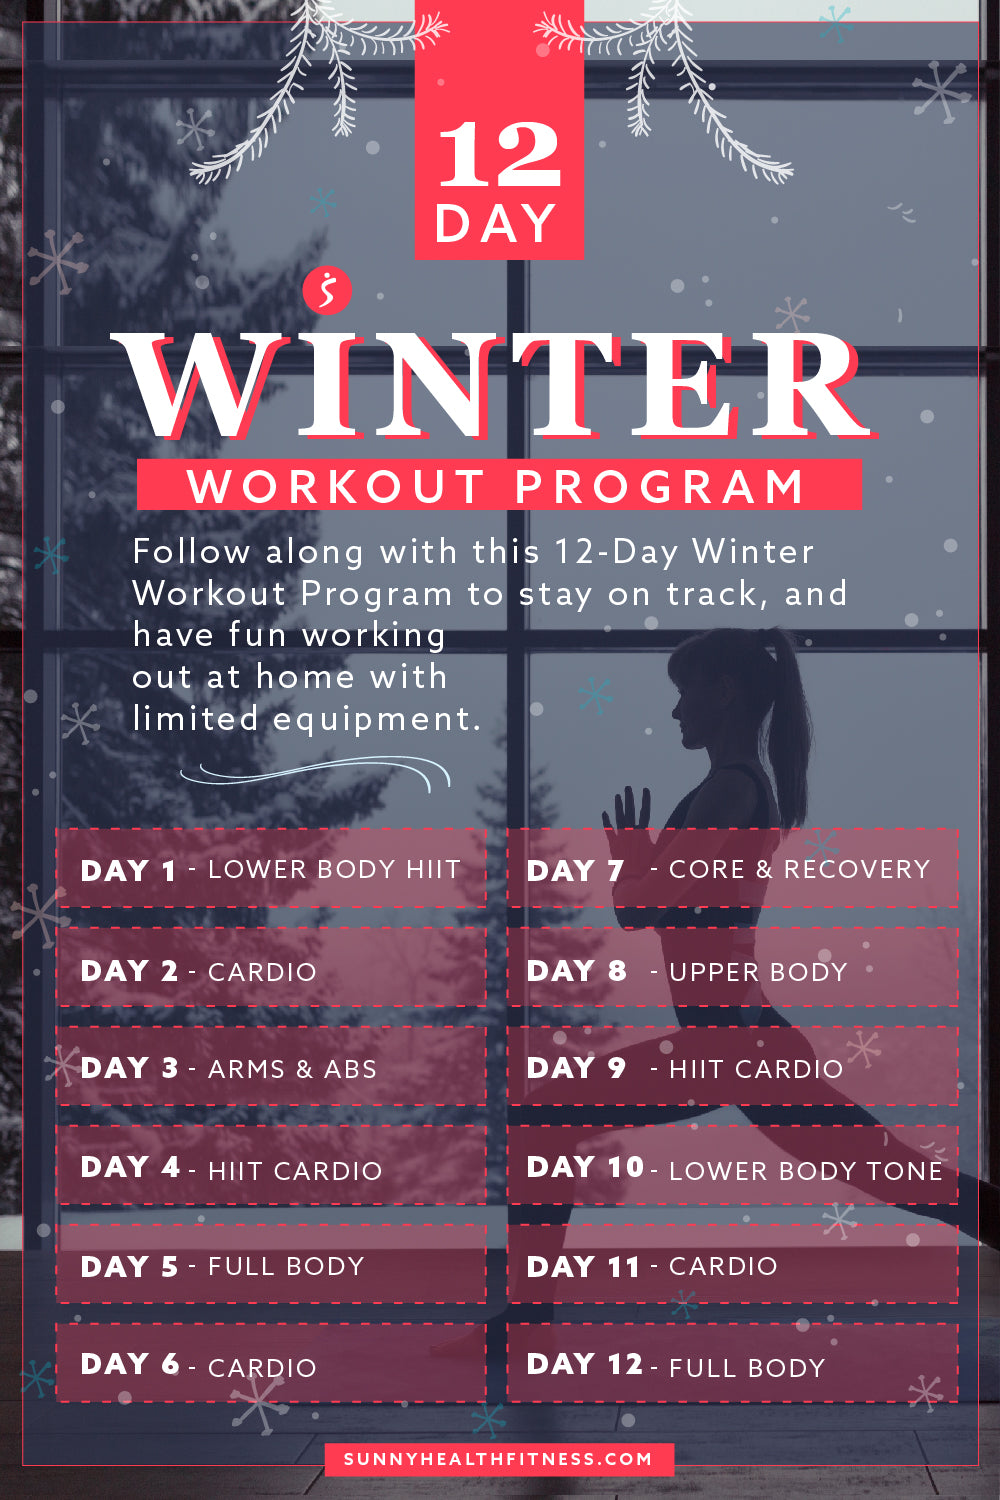 12 Day Winter Workout Program Infographic